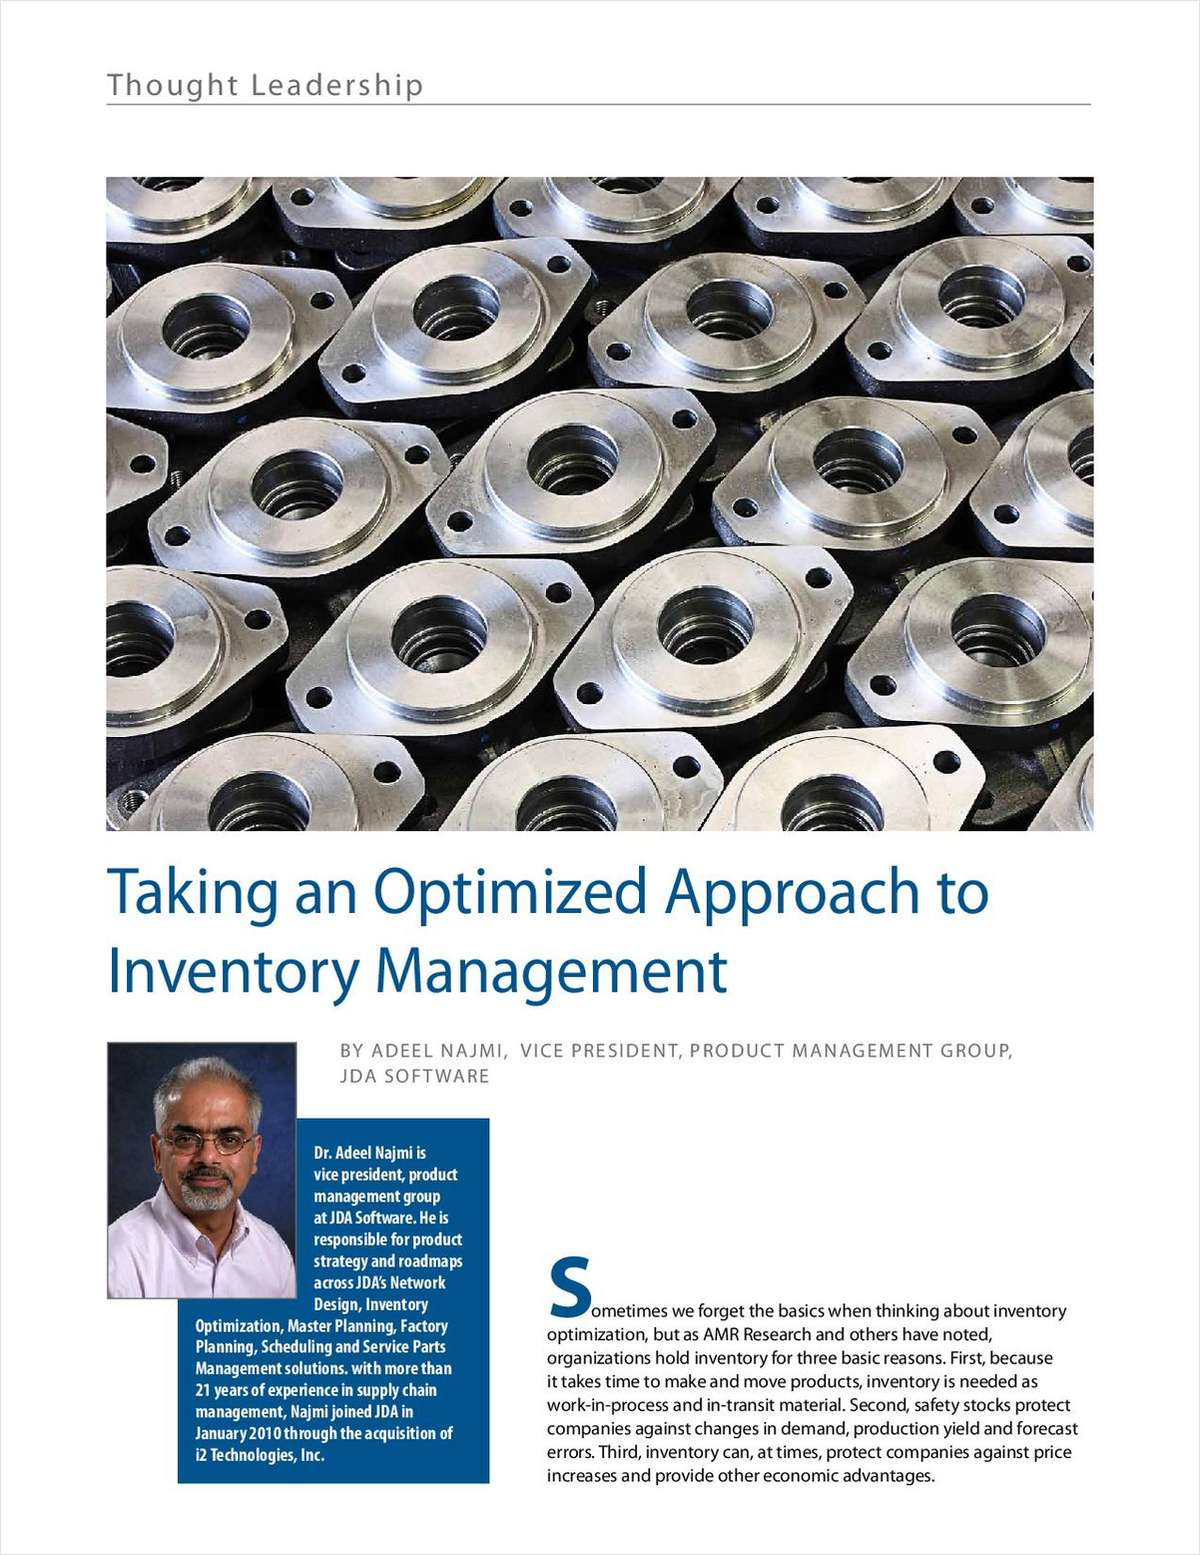 Take an Optimized Approach to Inventory Management